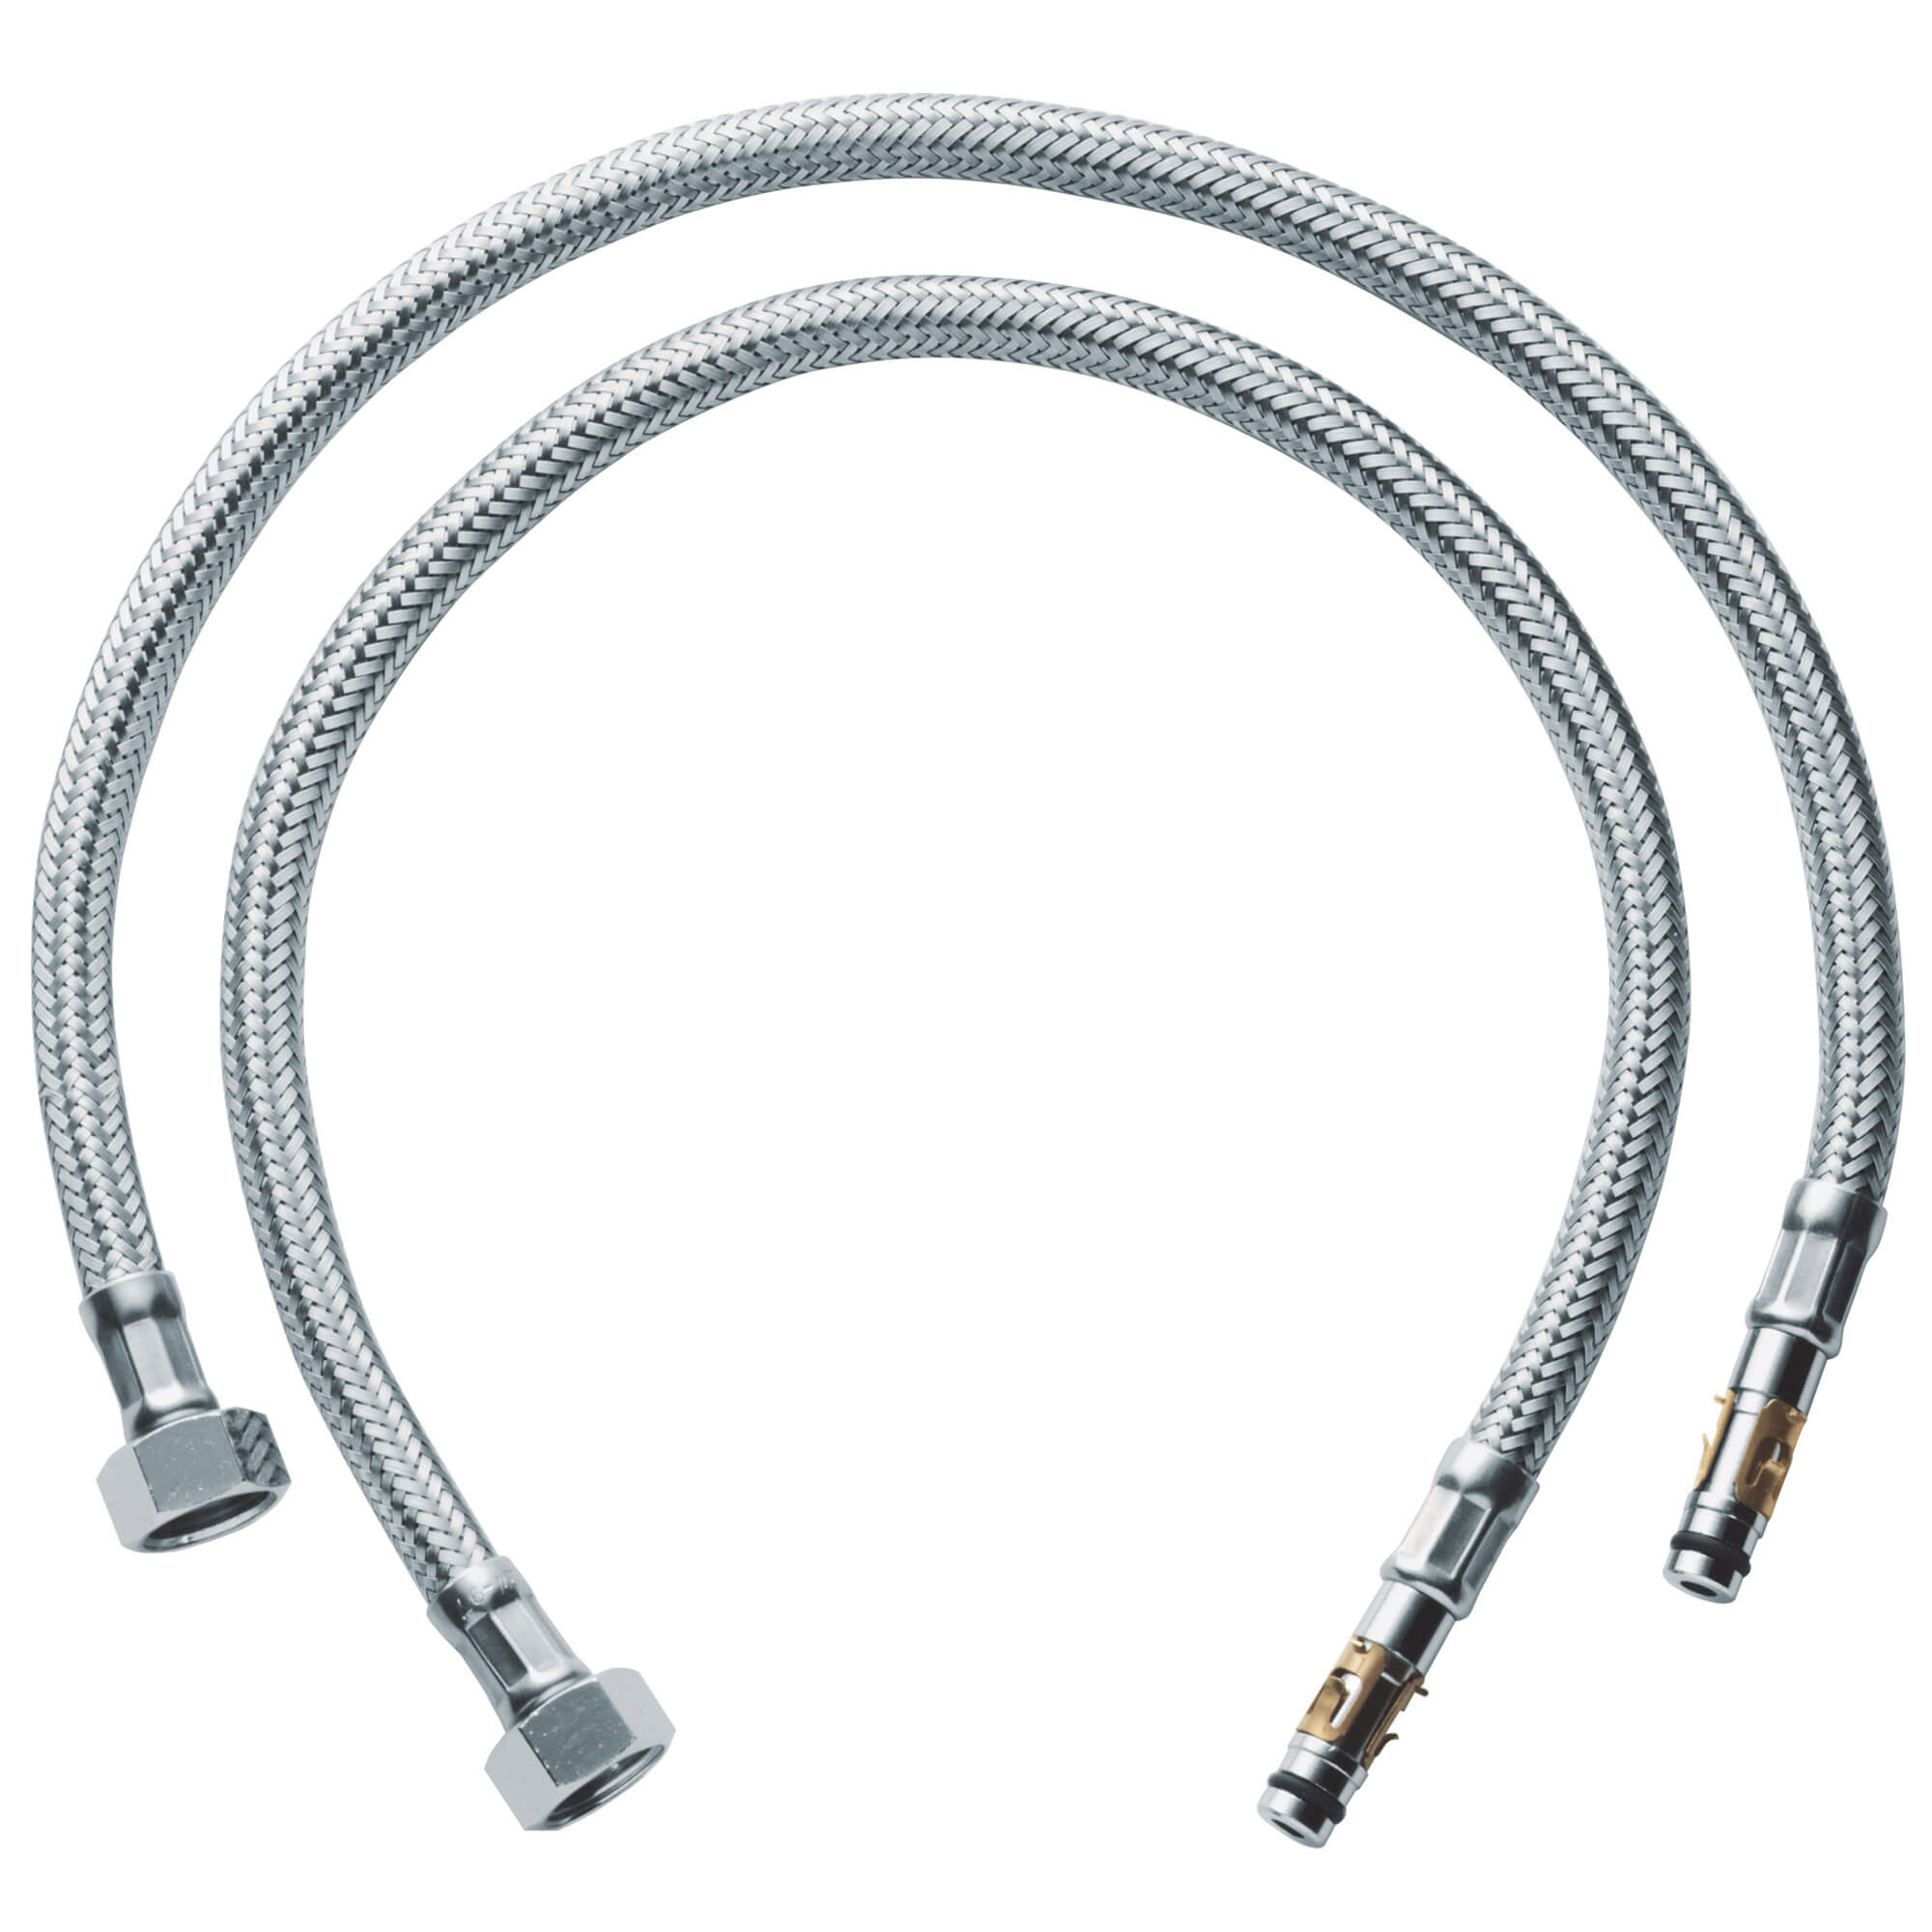 Flexible Connection Hose 18 1 2 Inch GROHE CHROME